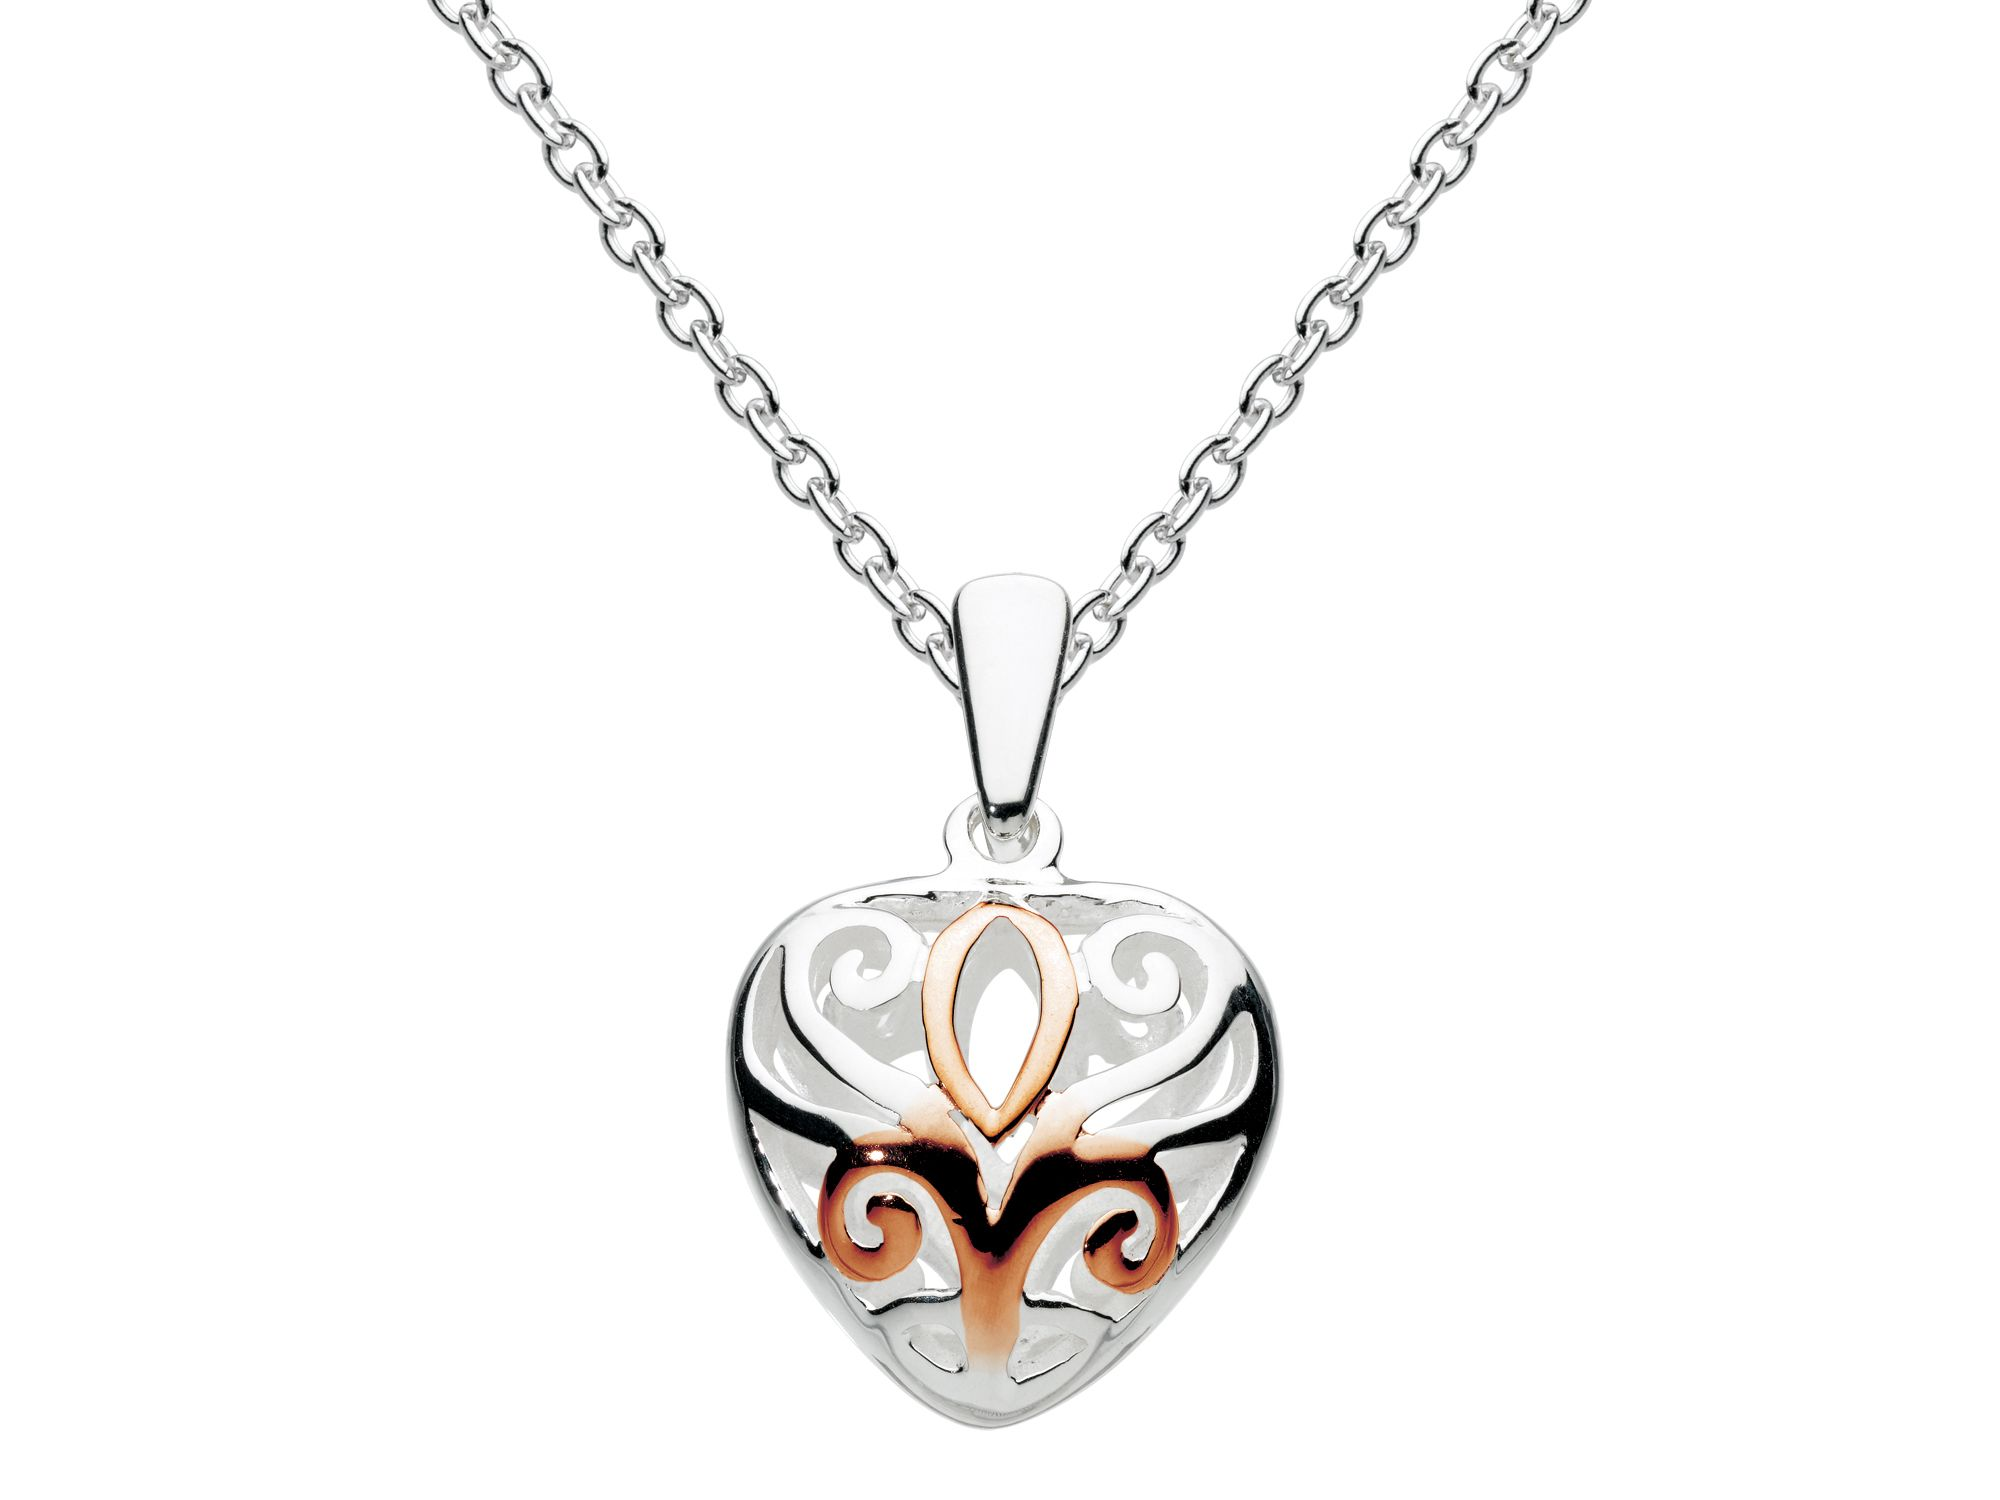 Rose gold plate heart pendant